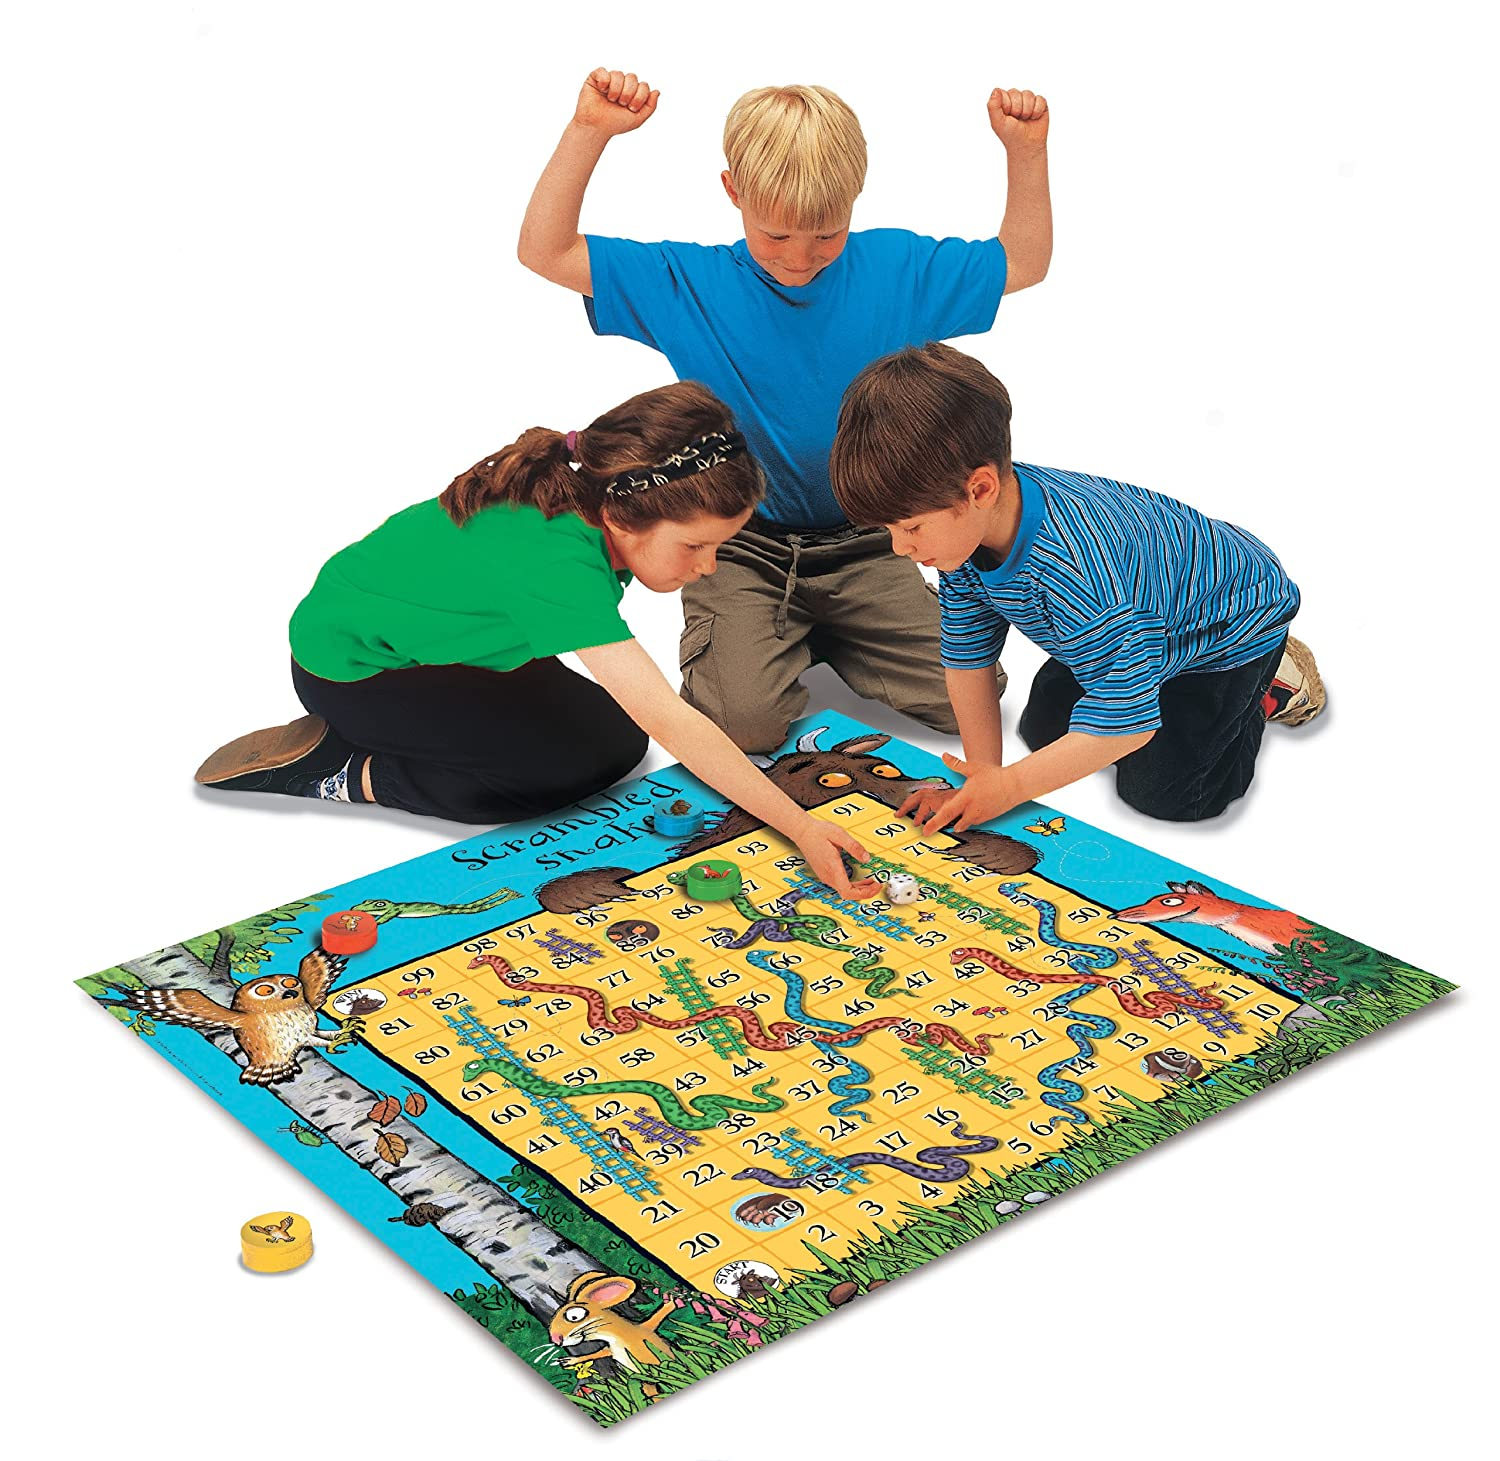 60/% Off Retail Giant Snakes And Ladders